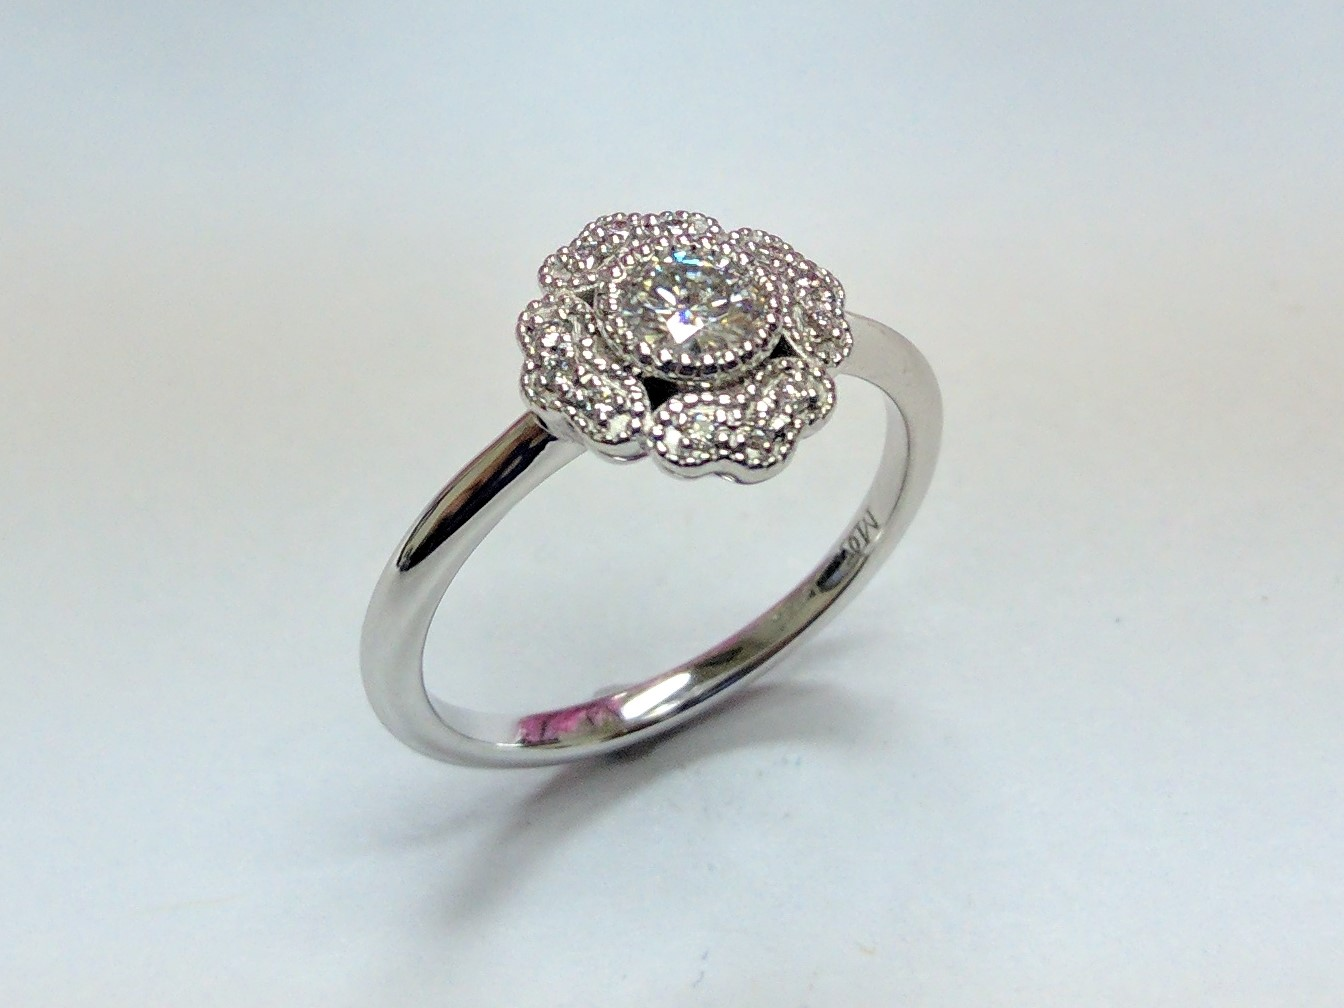 Floral Halo Petite Diamond Ring